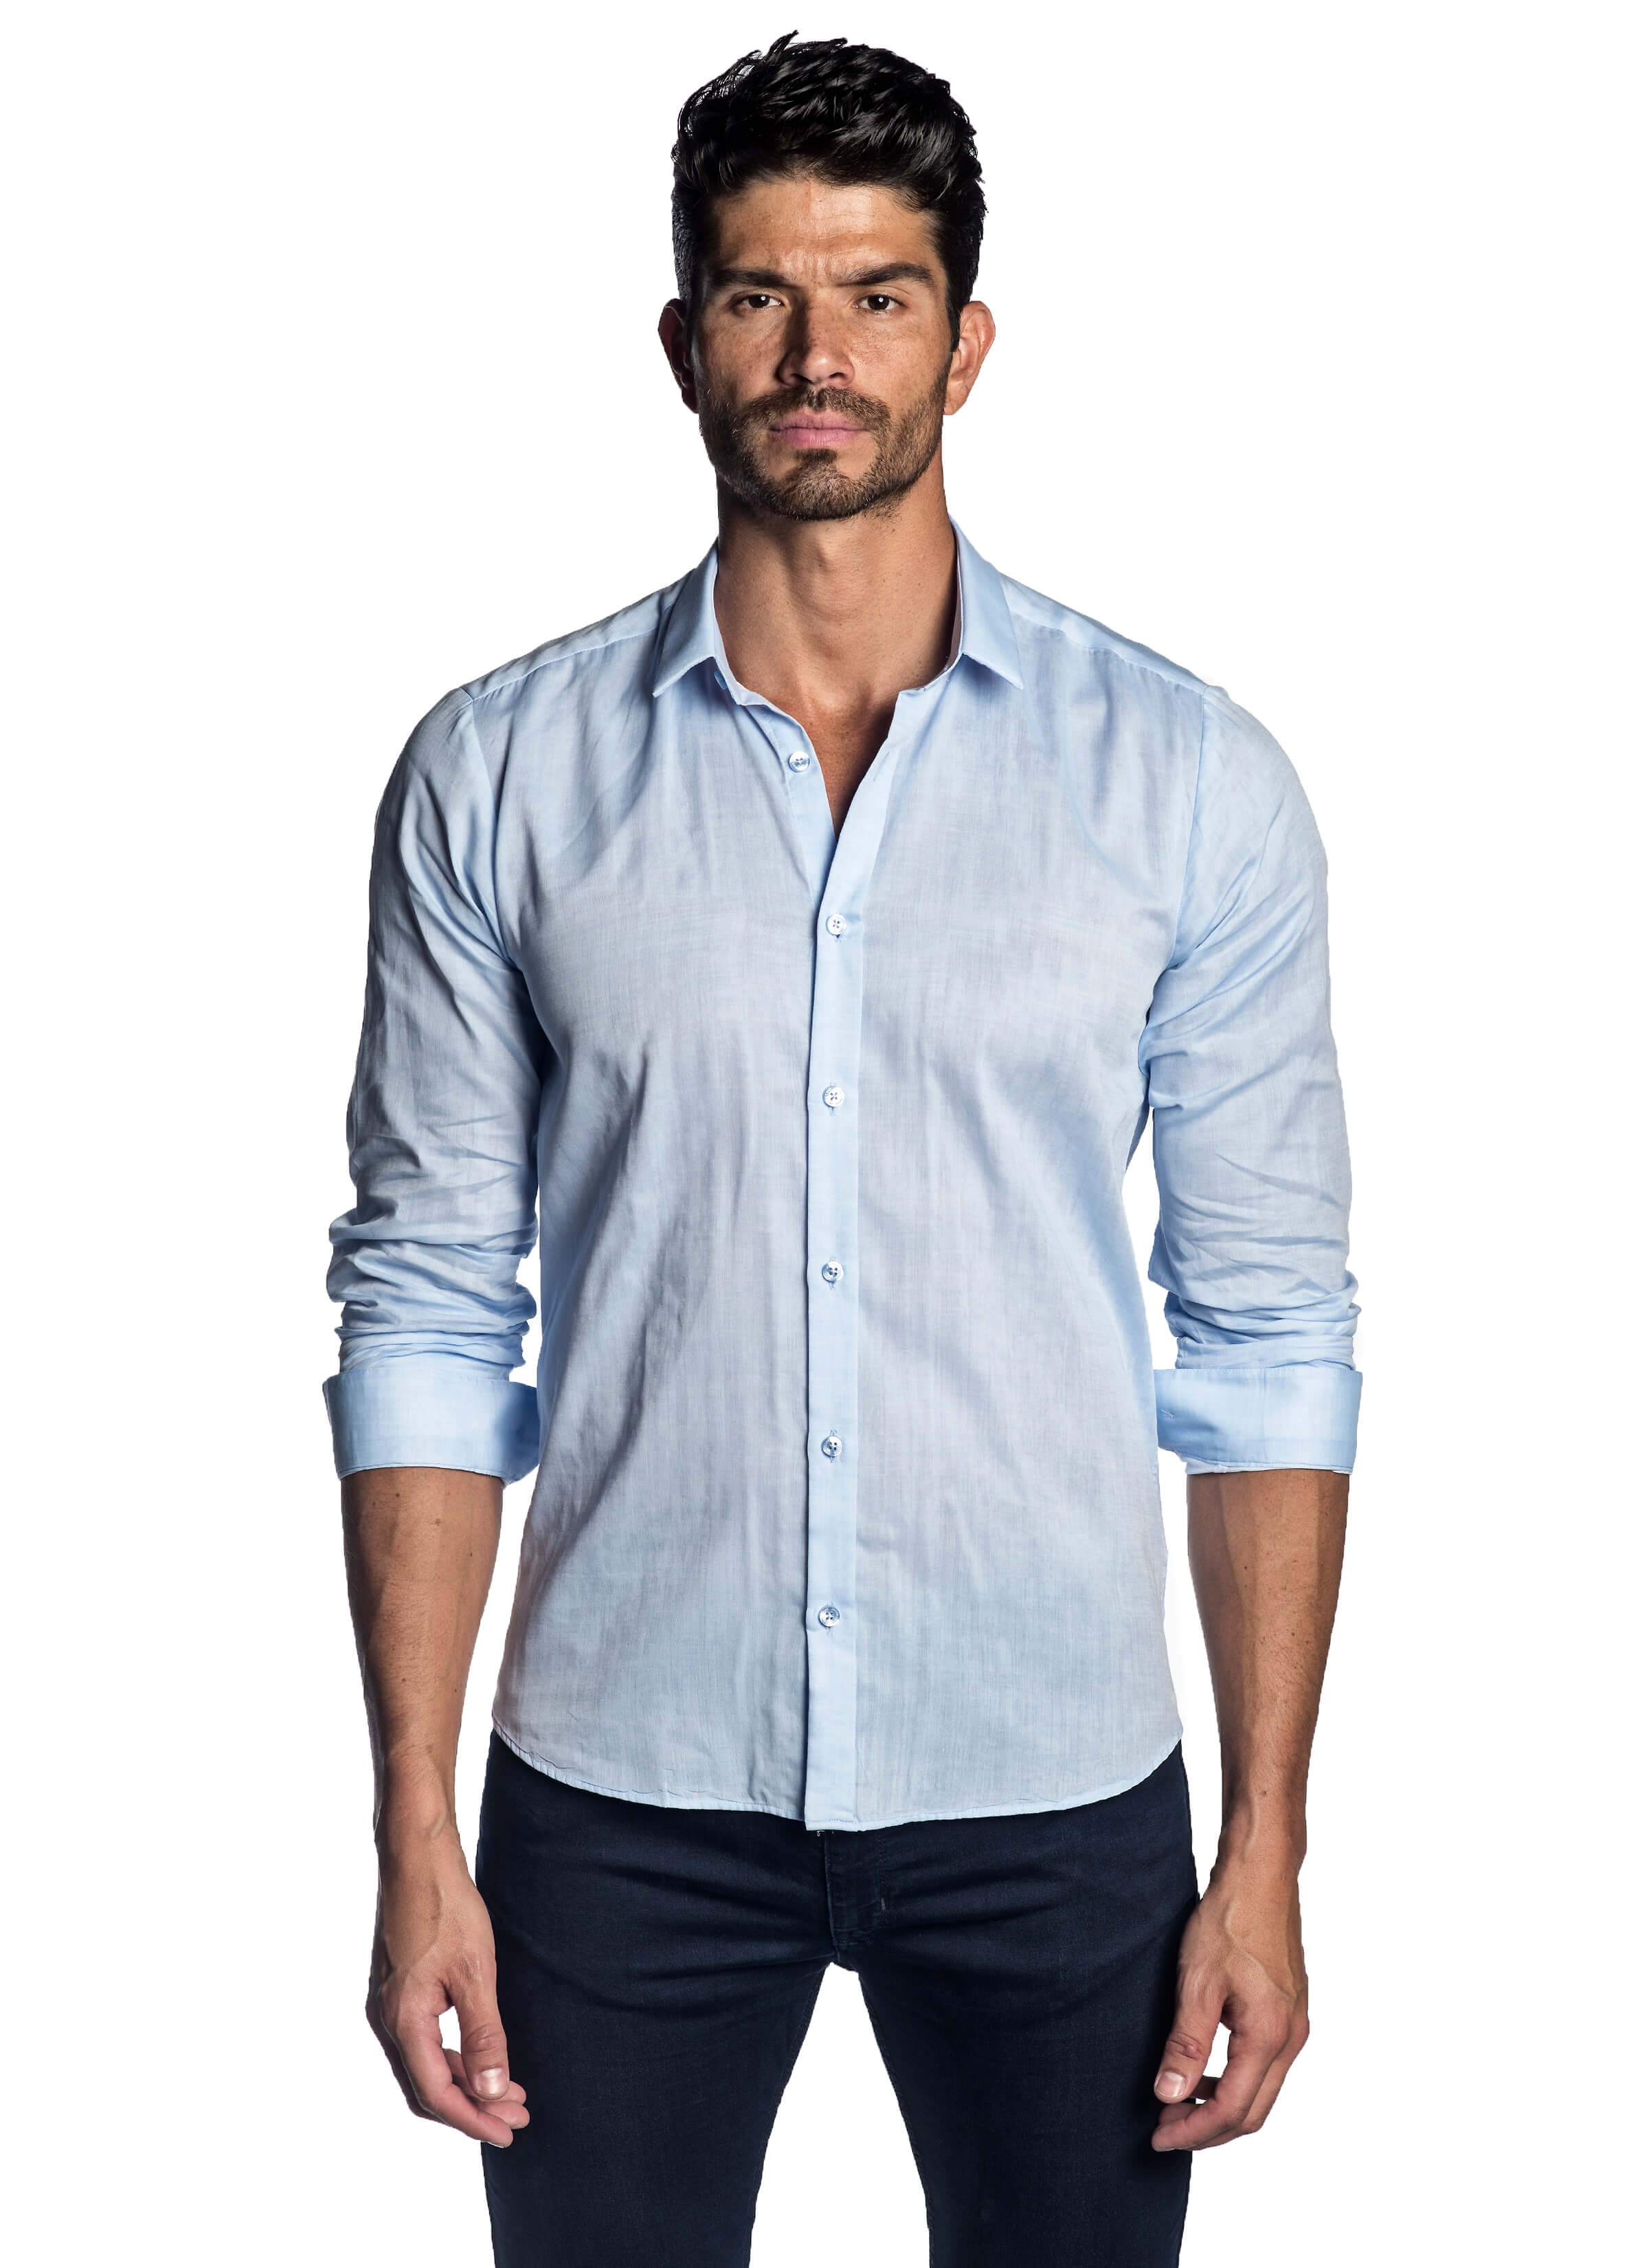 Light Blue Solid Shirt for Men - front AH-T-2032 - Jared Lang